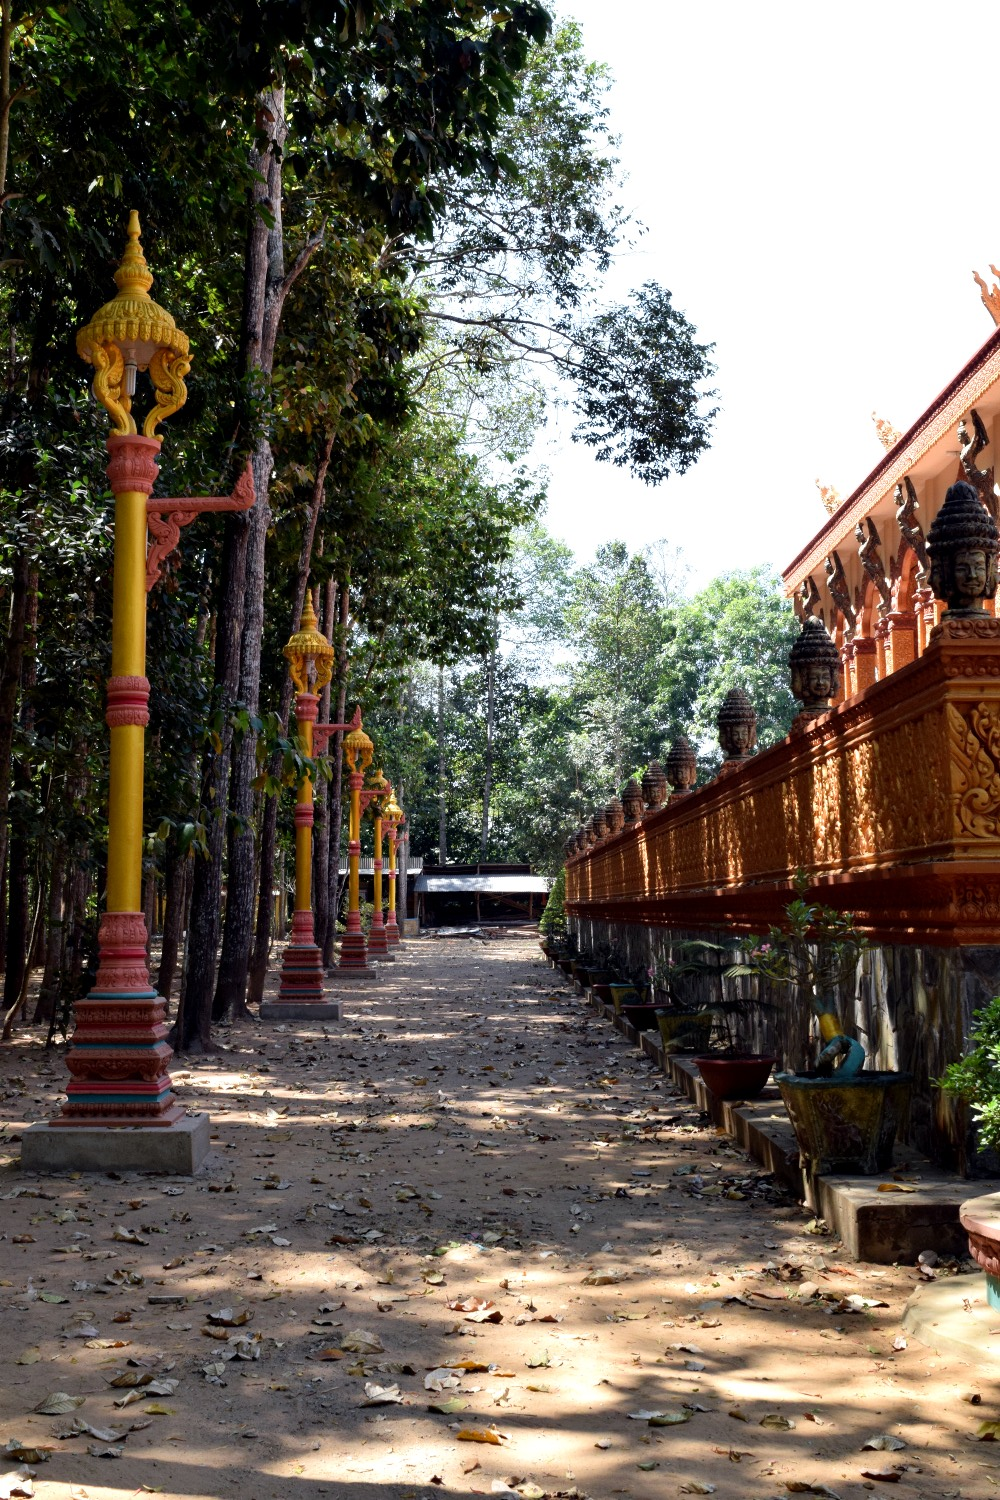 Khmer temple in the Mekong